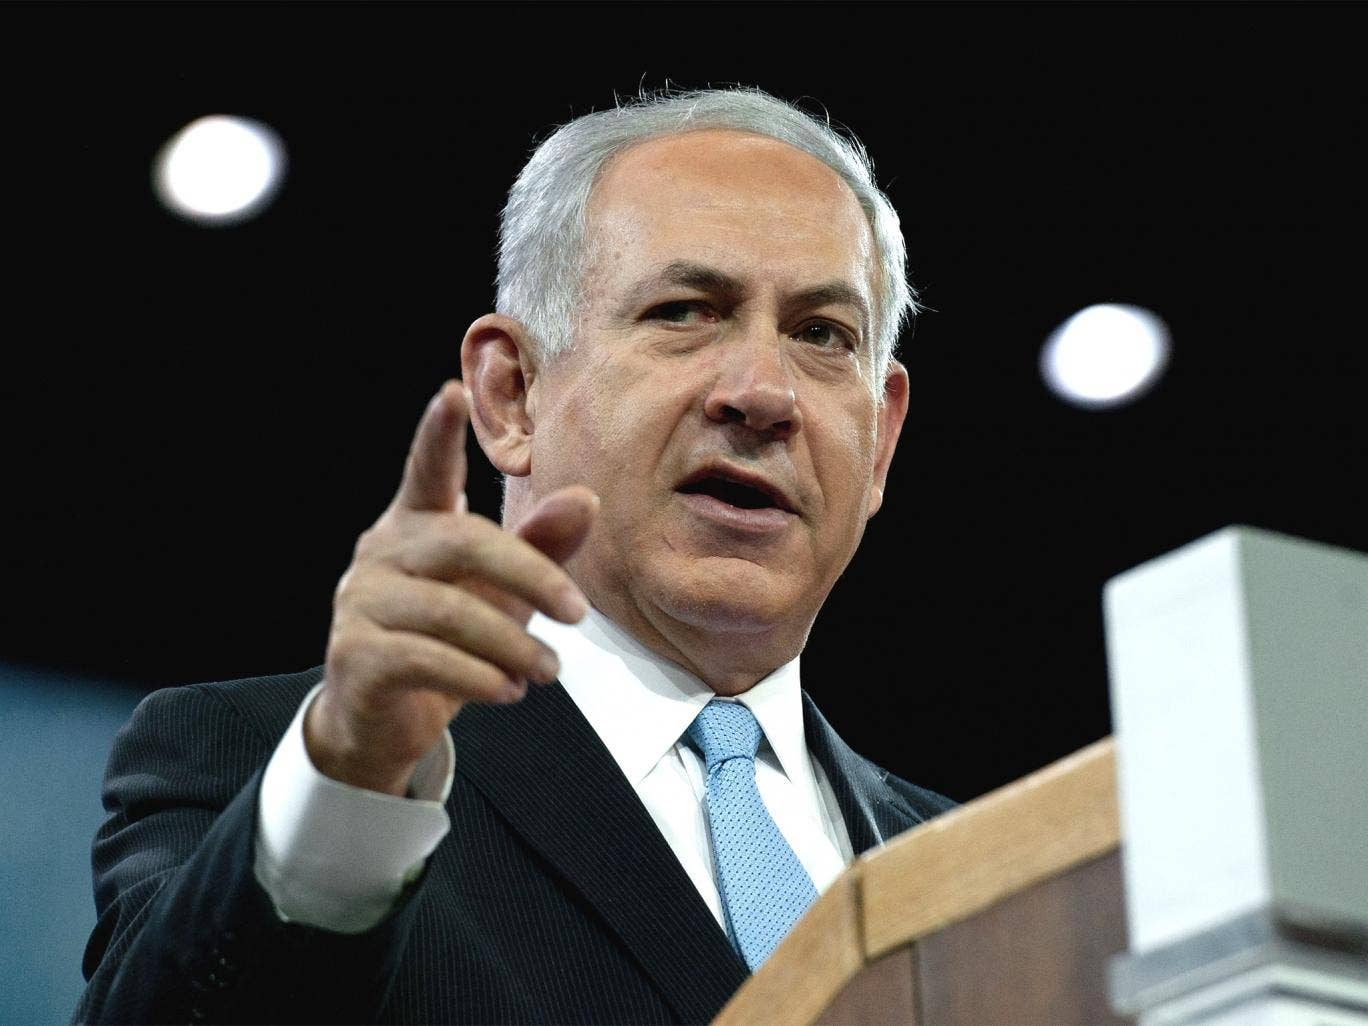 Israeli Prime Minister Benjamin Netanyahu told the American Israel Public Affairs Committee's Policy Conference in Washington that the Palestinian President must 'stop denying history'